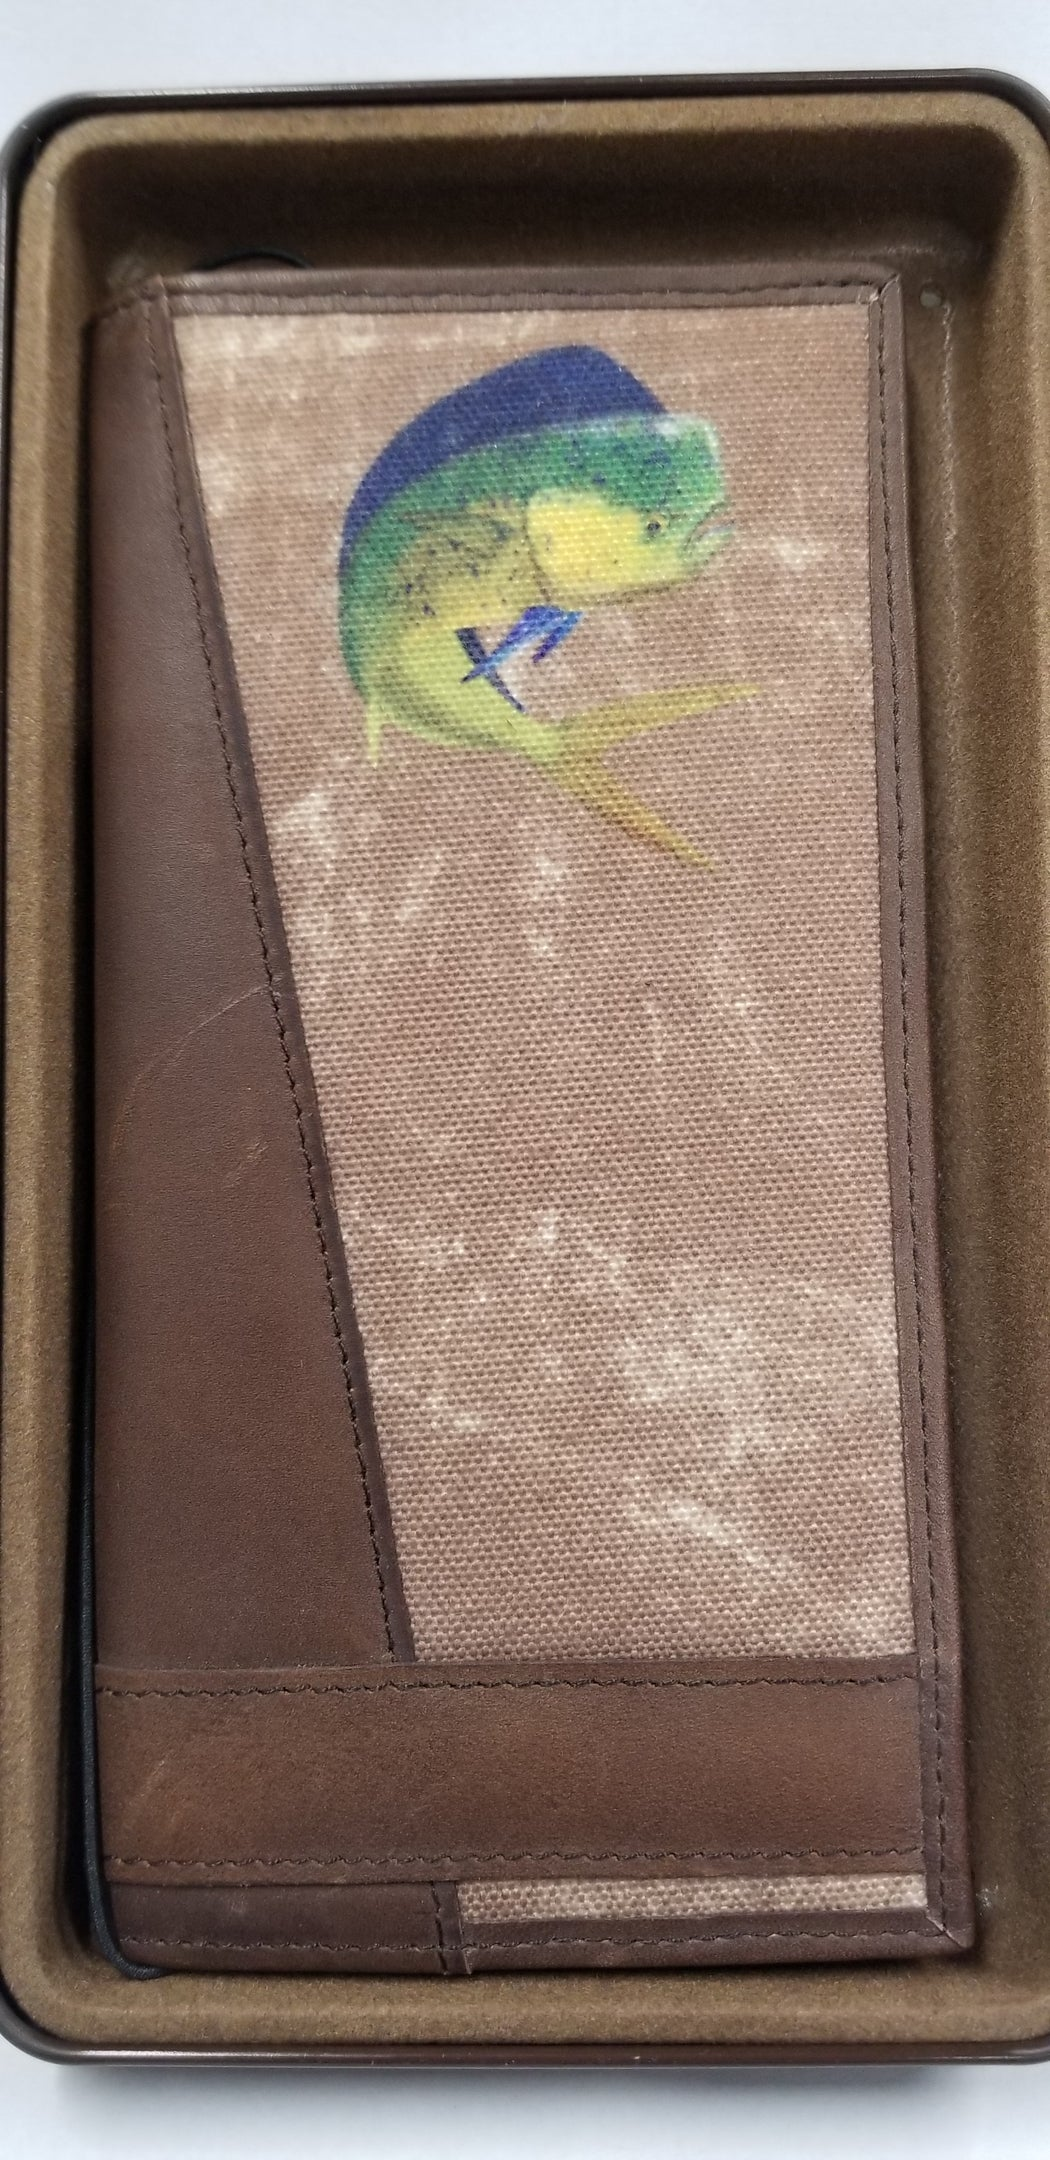 Zep-Pro Canvas Wallet With Mahi Mahi